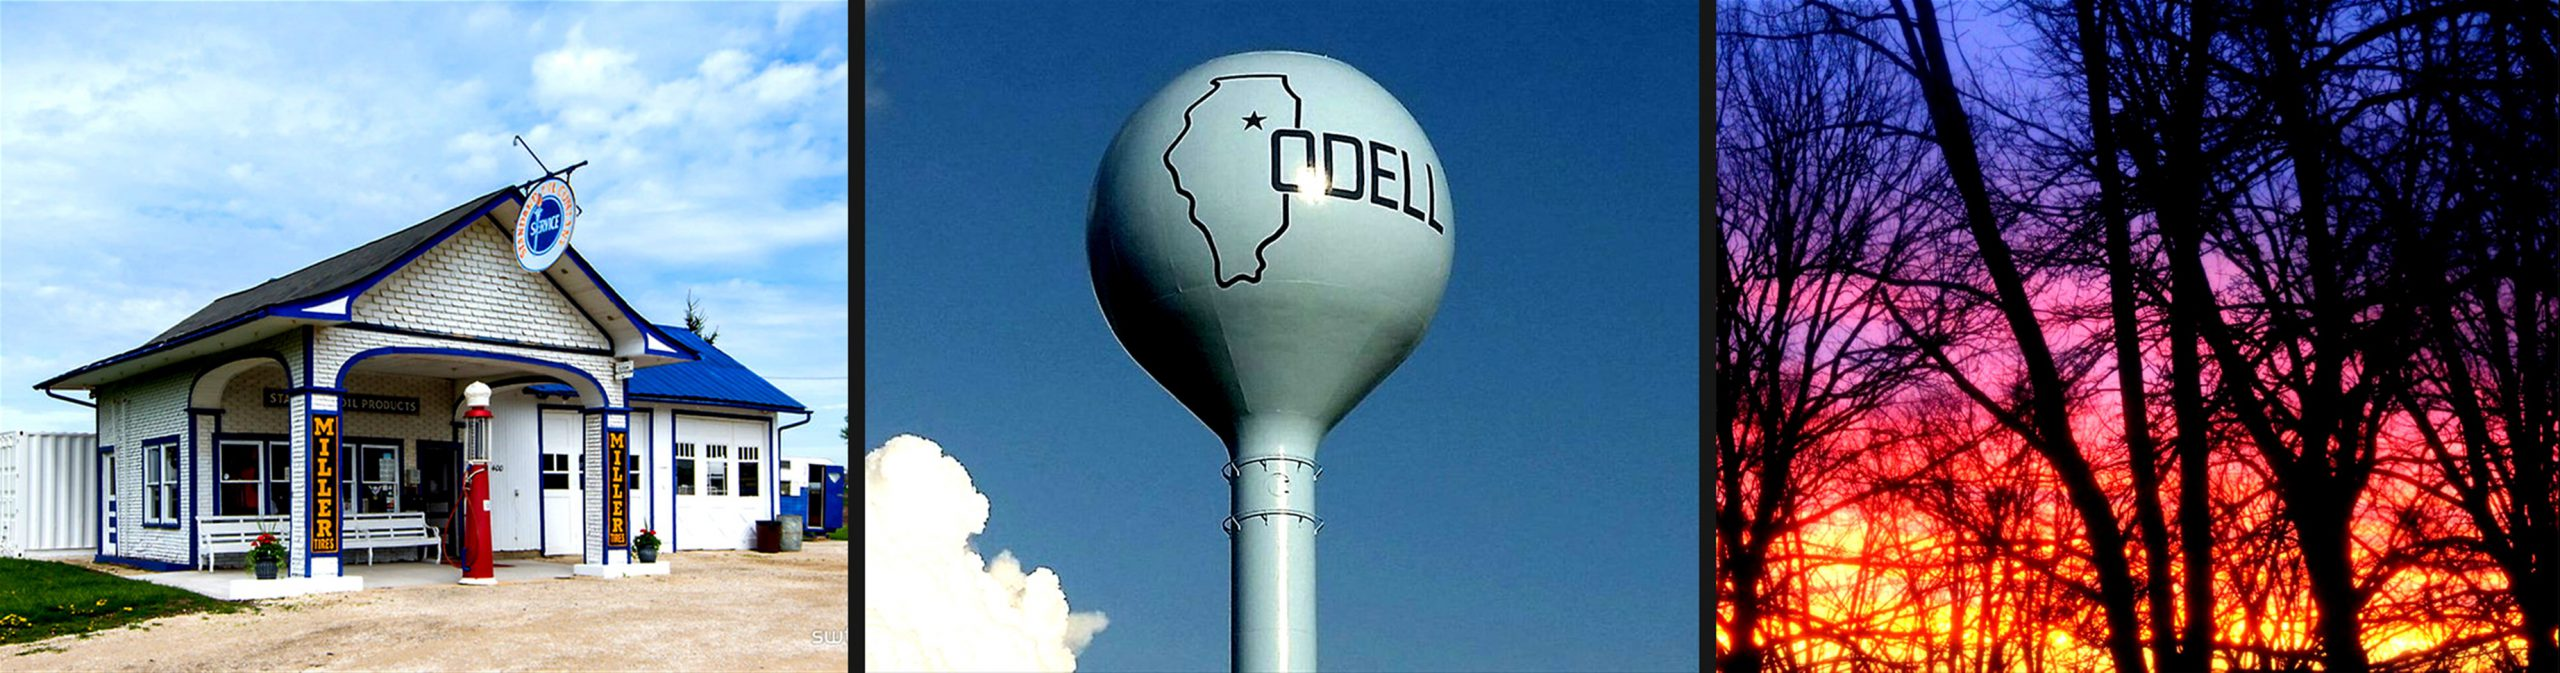 Odell Illinois Attractions: Historic Route 66 Gas Station and Museum, Water Tower, and Sunset with Trees